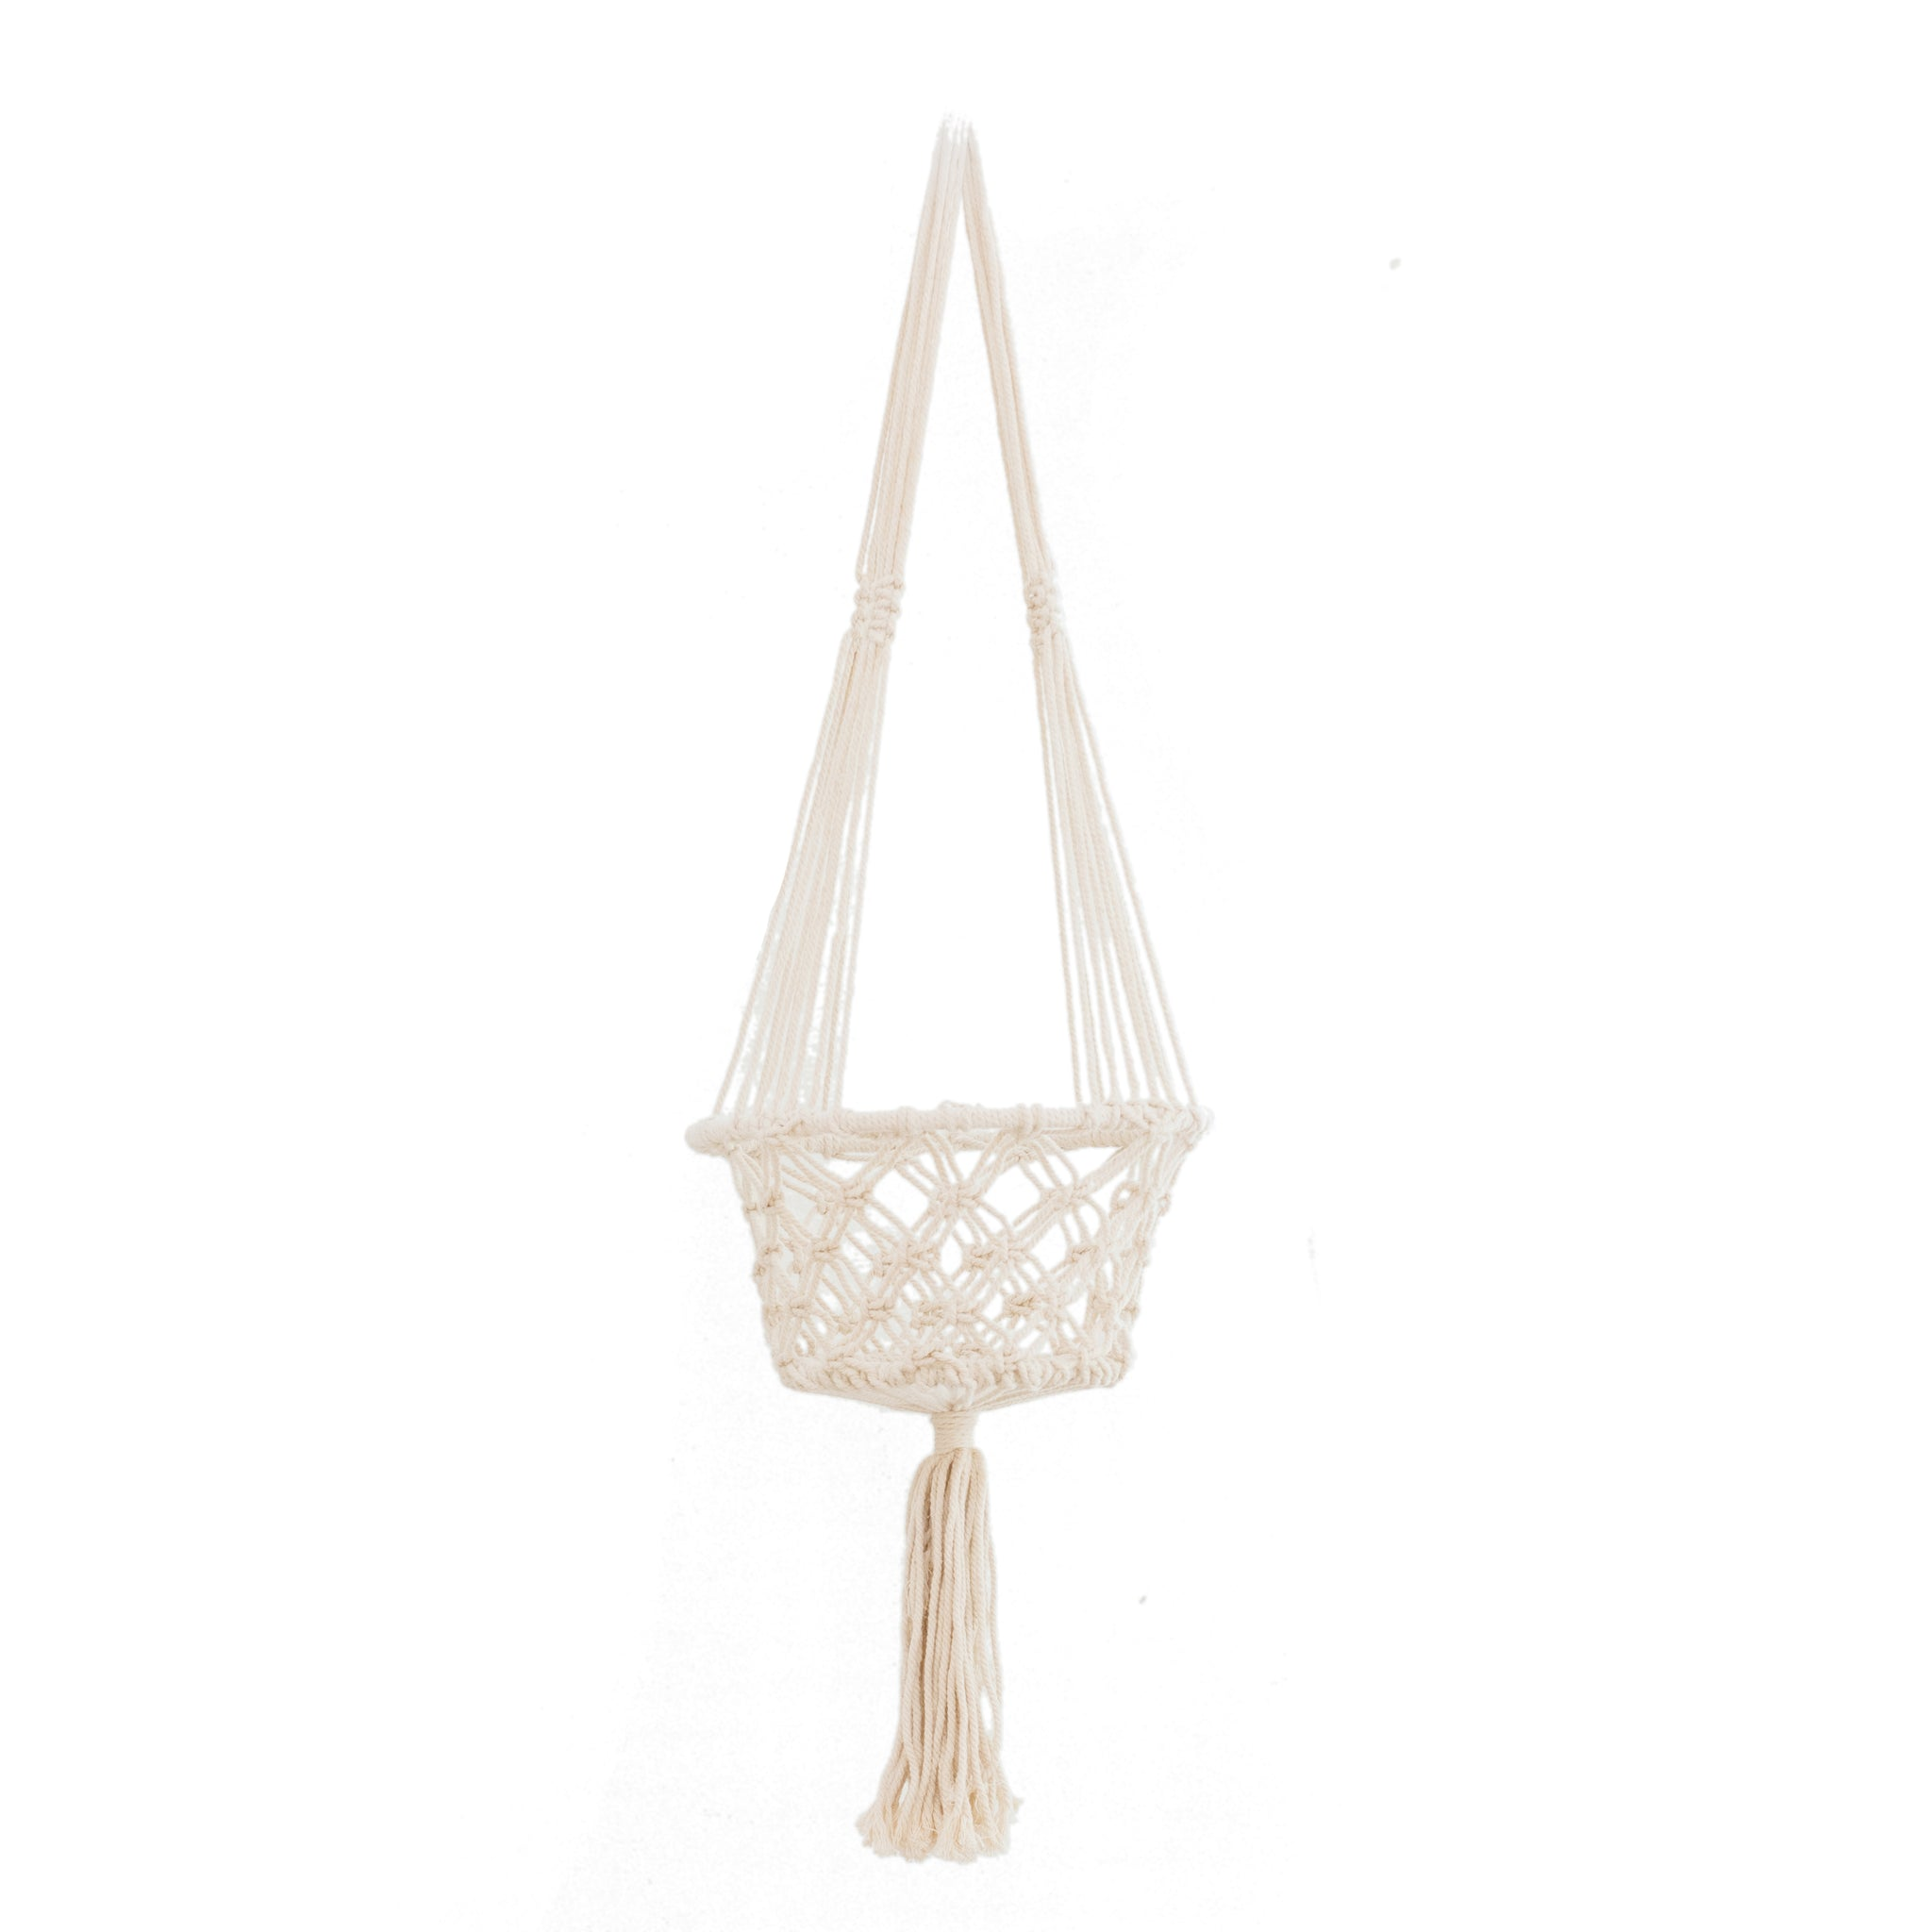 Macrame Hoop Planter Large Cream